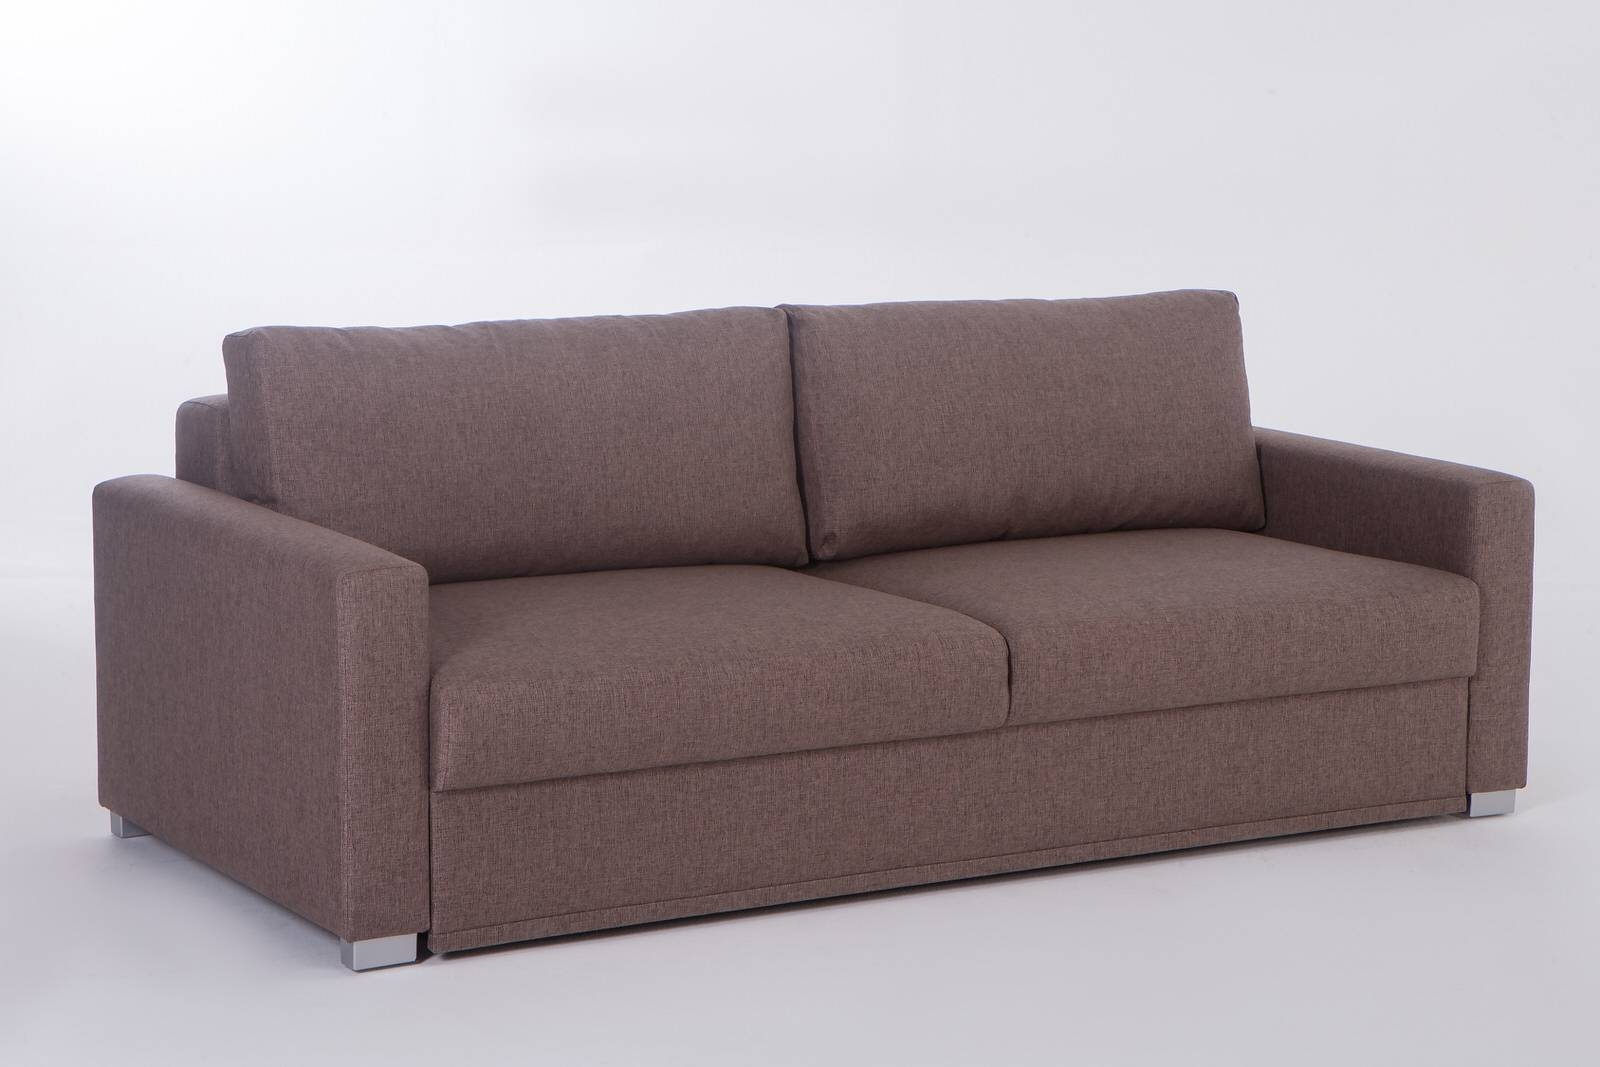 Furniture: Comfortable Convertible Sofa Bed For Elegant Sofa inside Castro Convertible Sofas (Image 4 of 15)